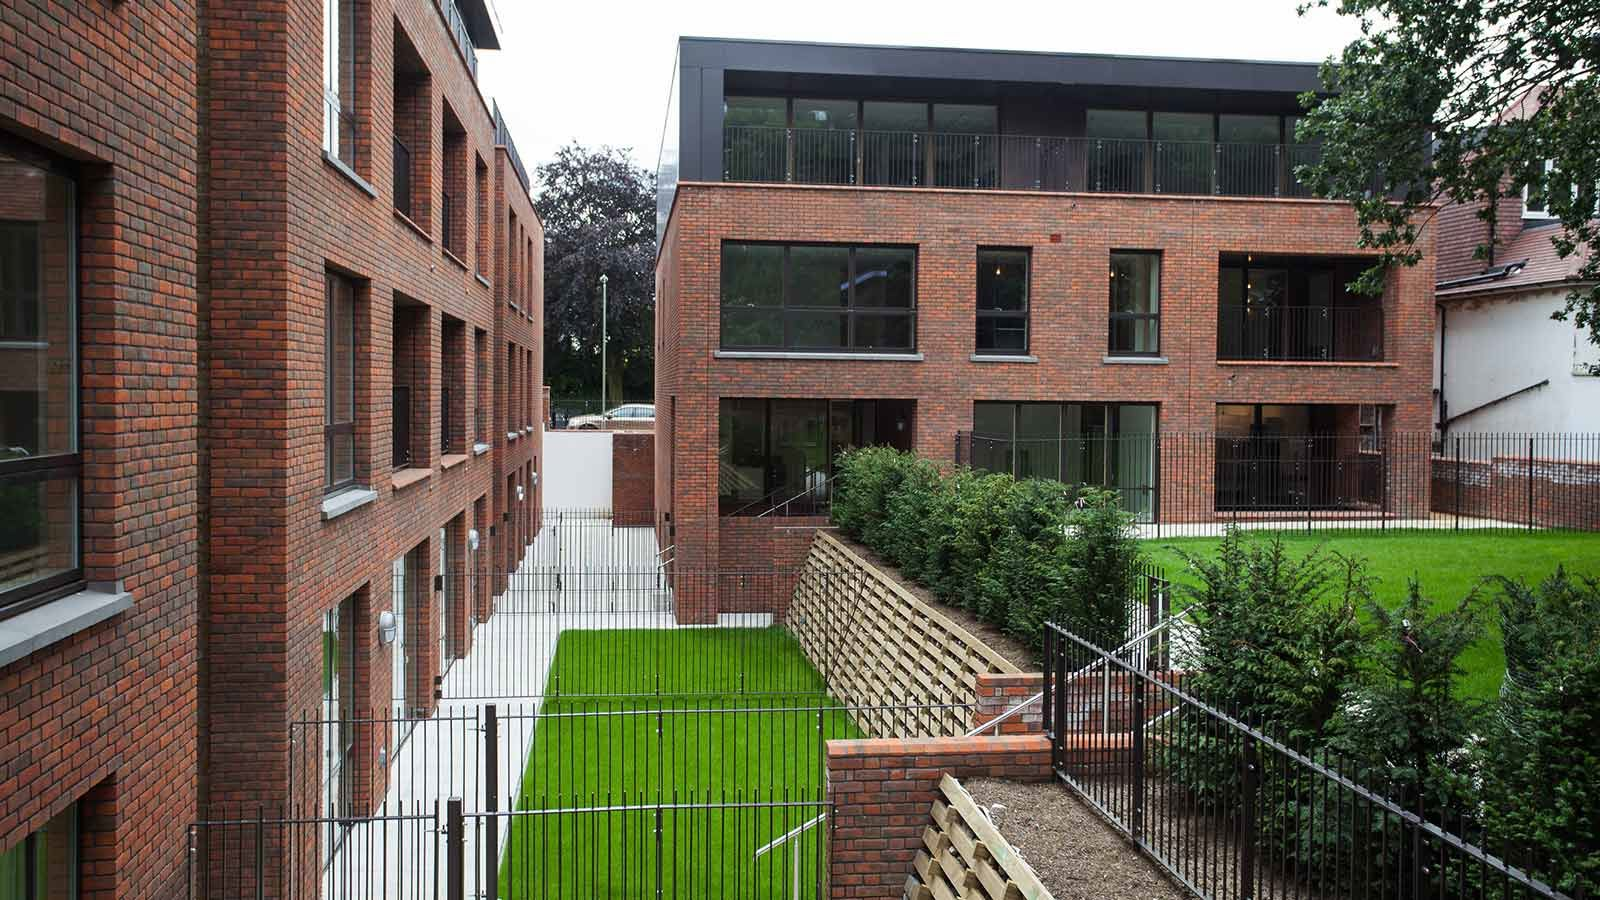 The Beaumont Residential Development Charity - Mace Group